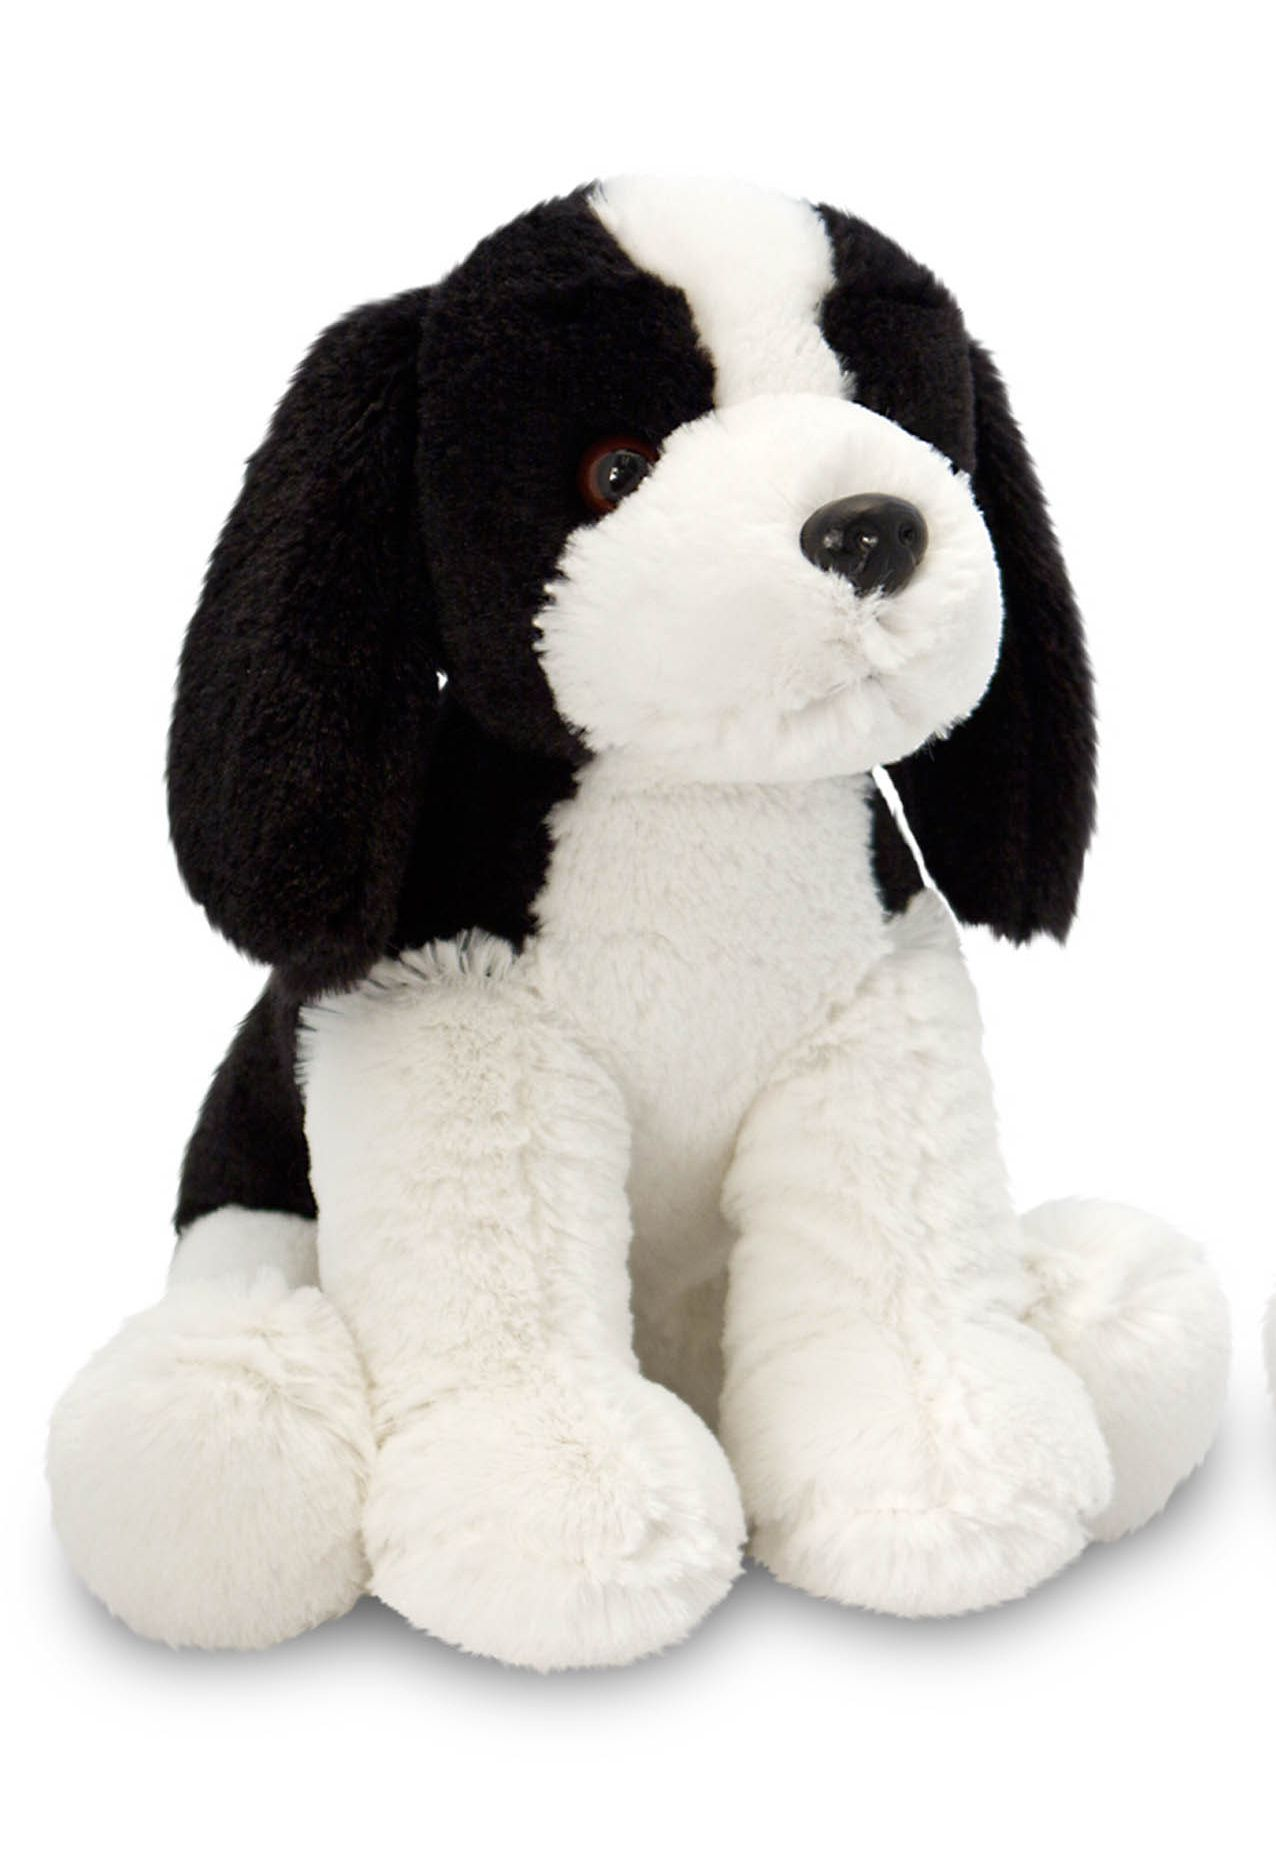 Keel 23cm Spaniel Black & White Dog